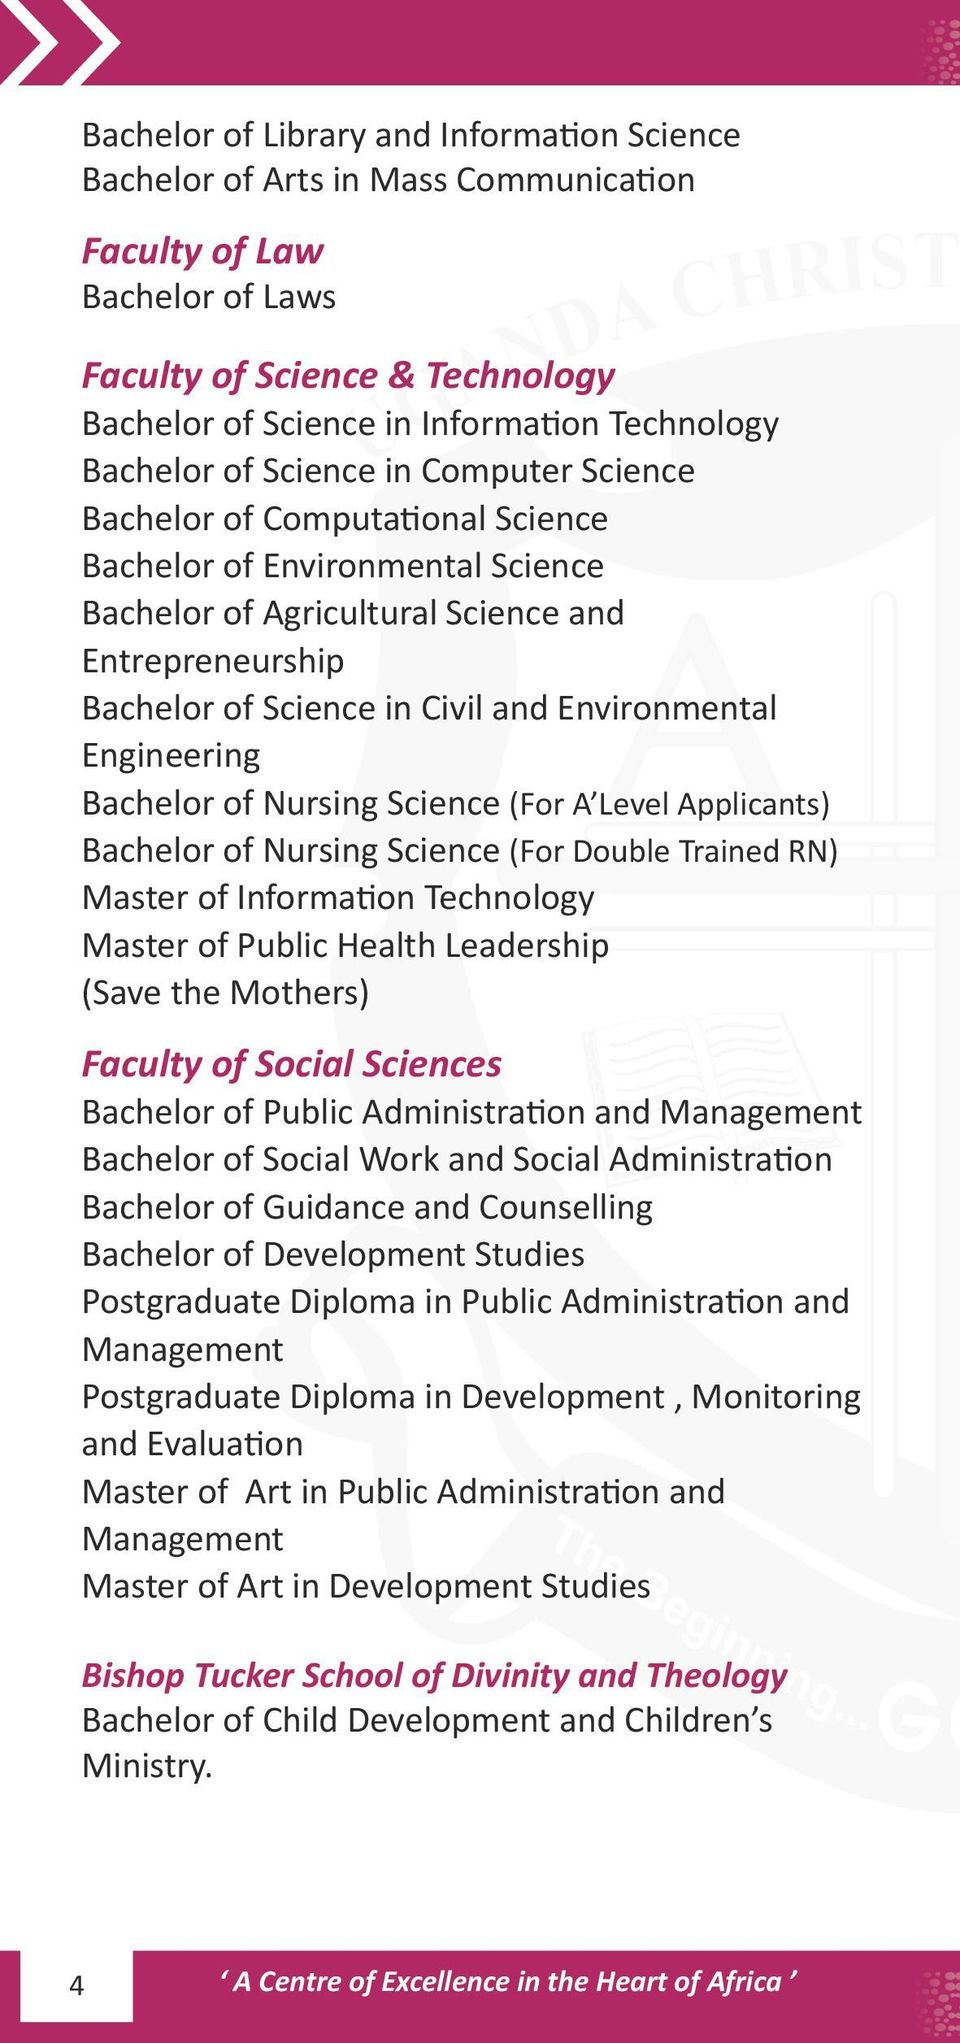 Environmental Engineering Bachelor of Nursing Science (For A Level Applicants) Bachelor of Nursing Science (For Double Trained RN) Master of Information Technology Master of Public Health Leadership